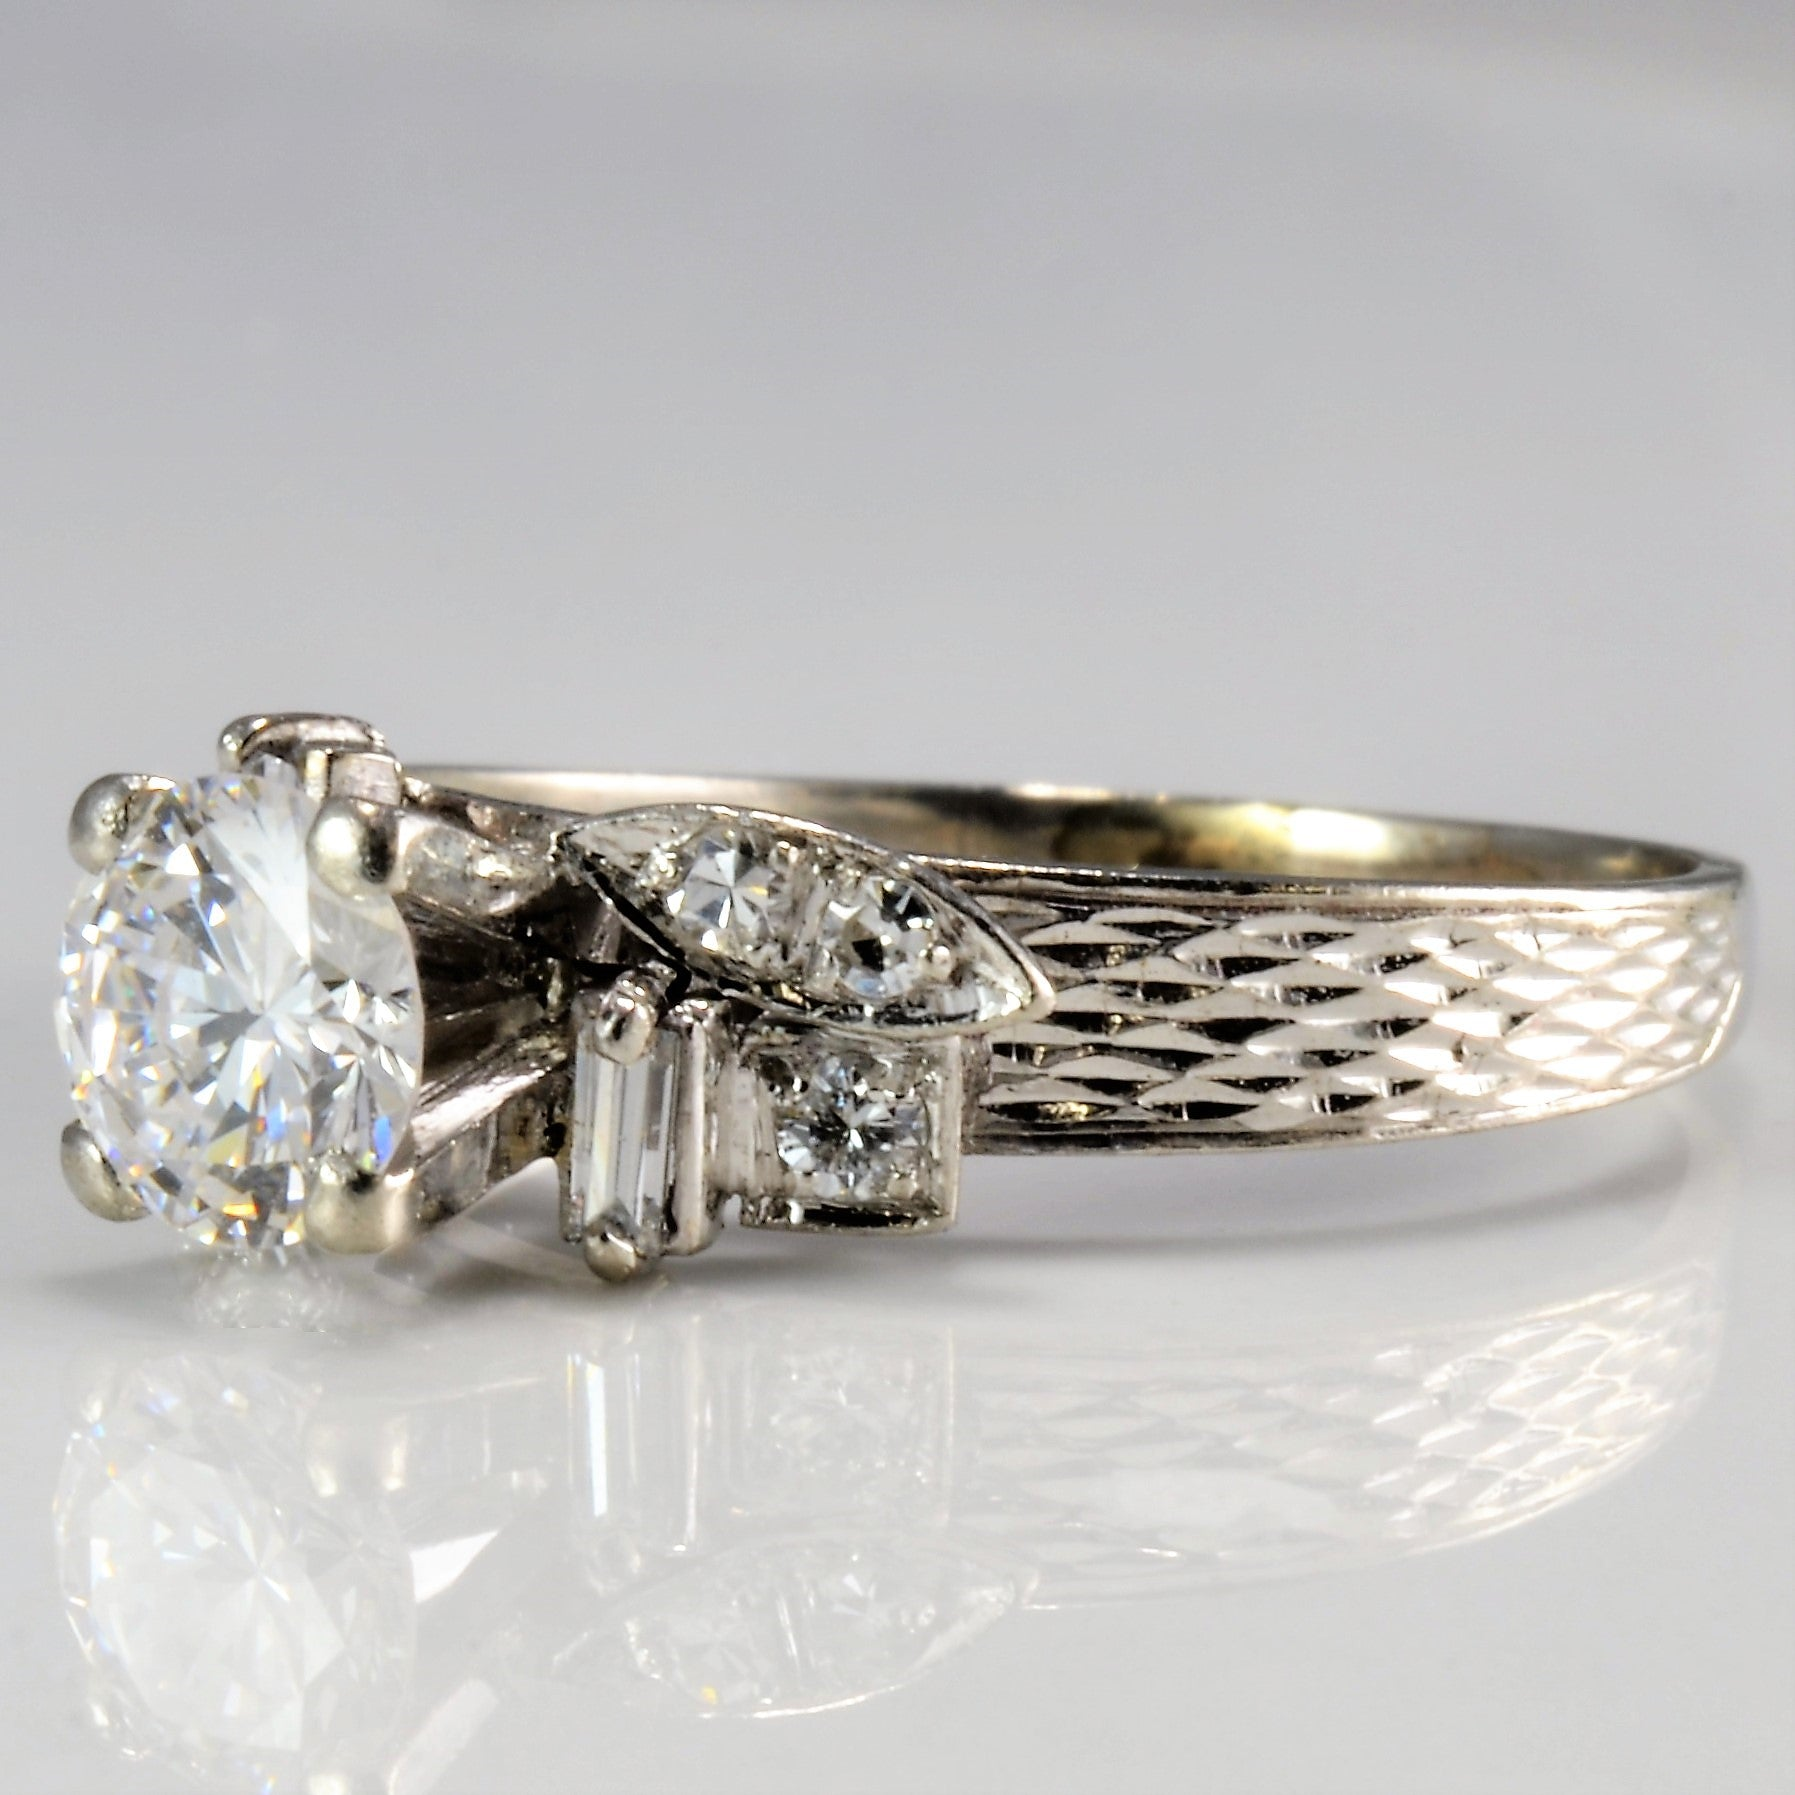 Platinum Retro High Set Diamond Engagement Ring | 0.81 ctw | SZ 5.5 |